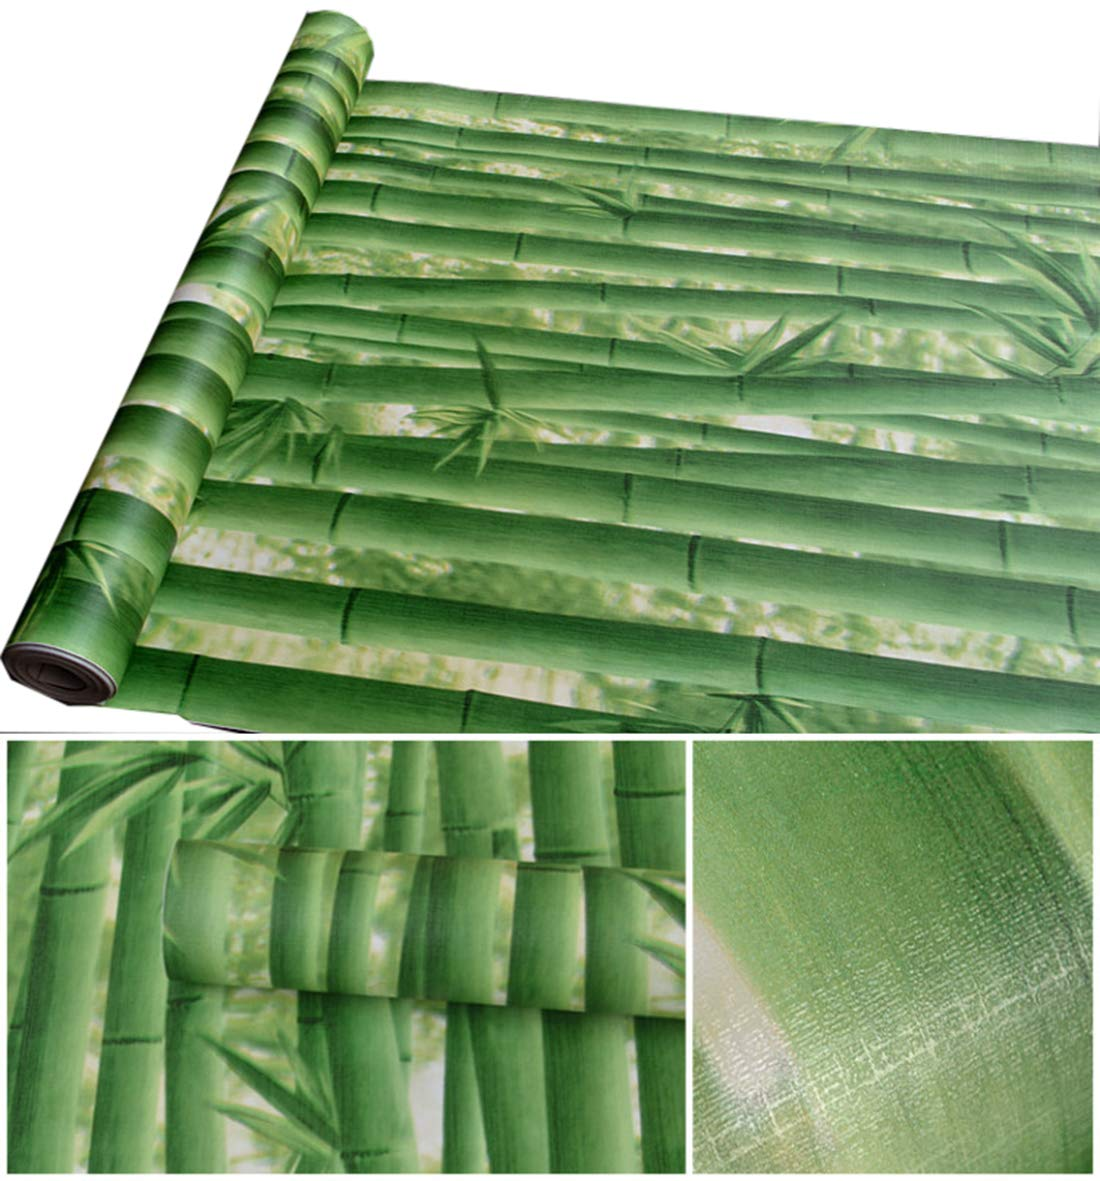 Amazon com: Green Bamboo Contact Paper self Adhesive Shelf